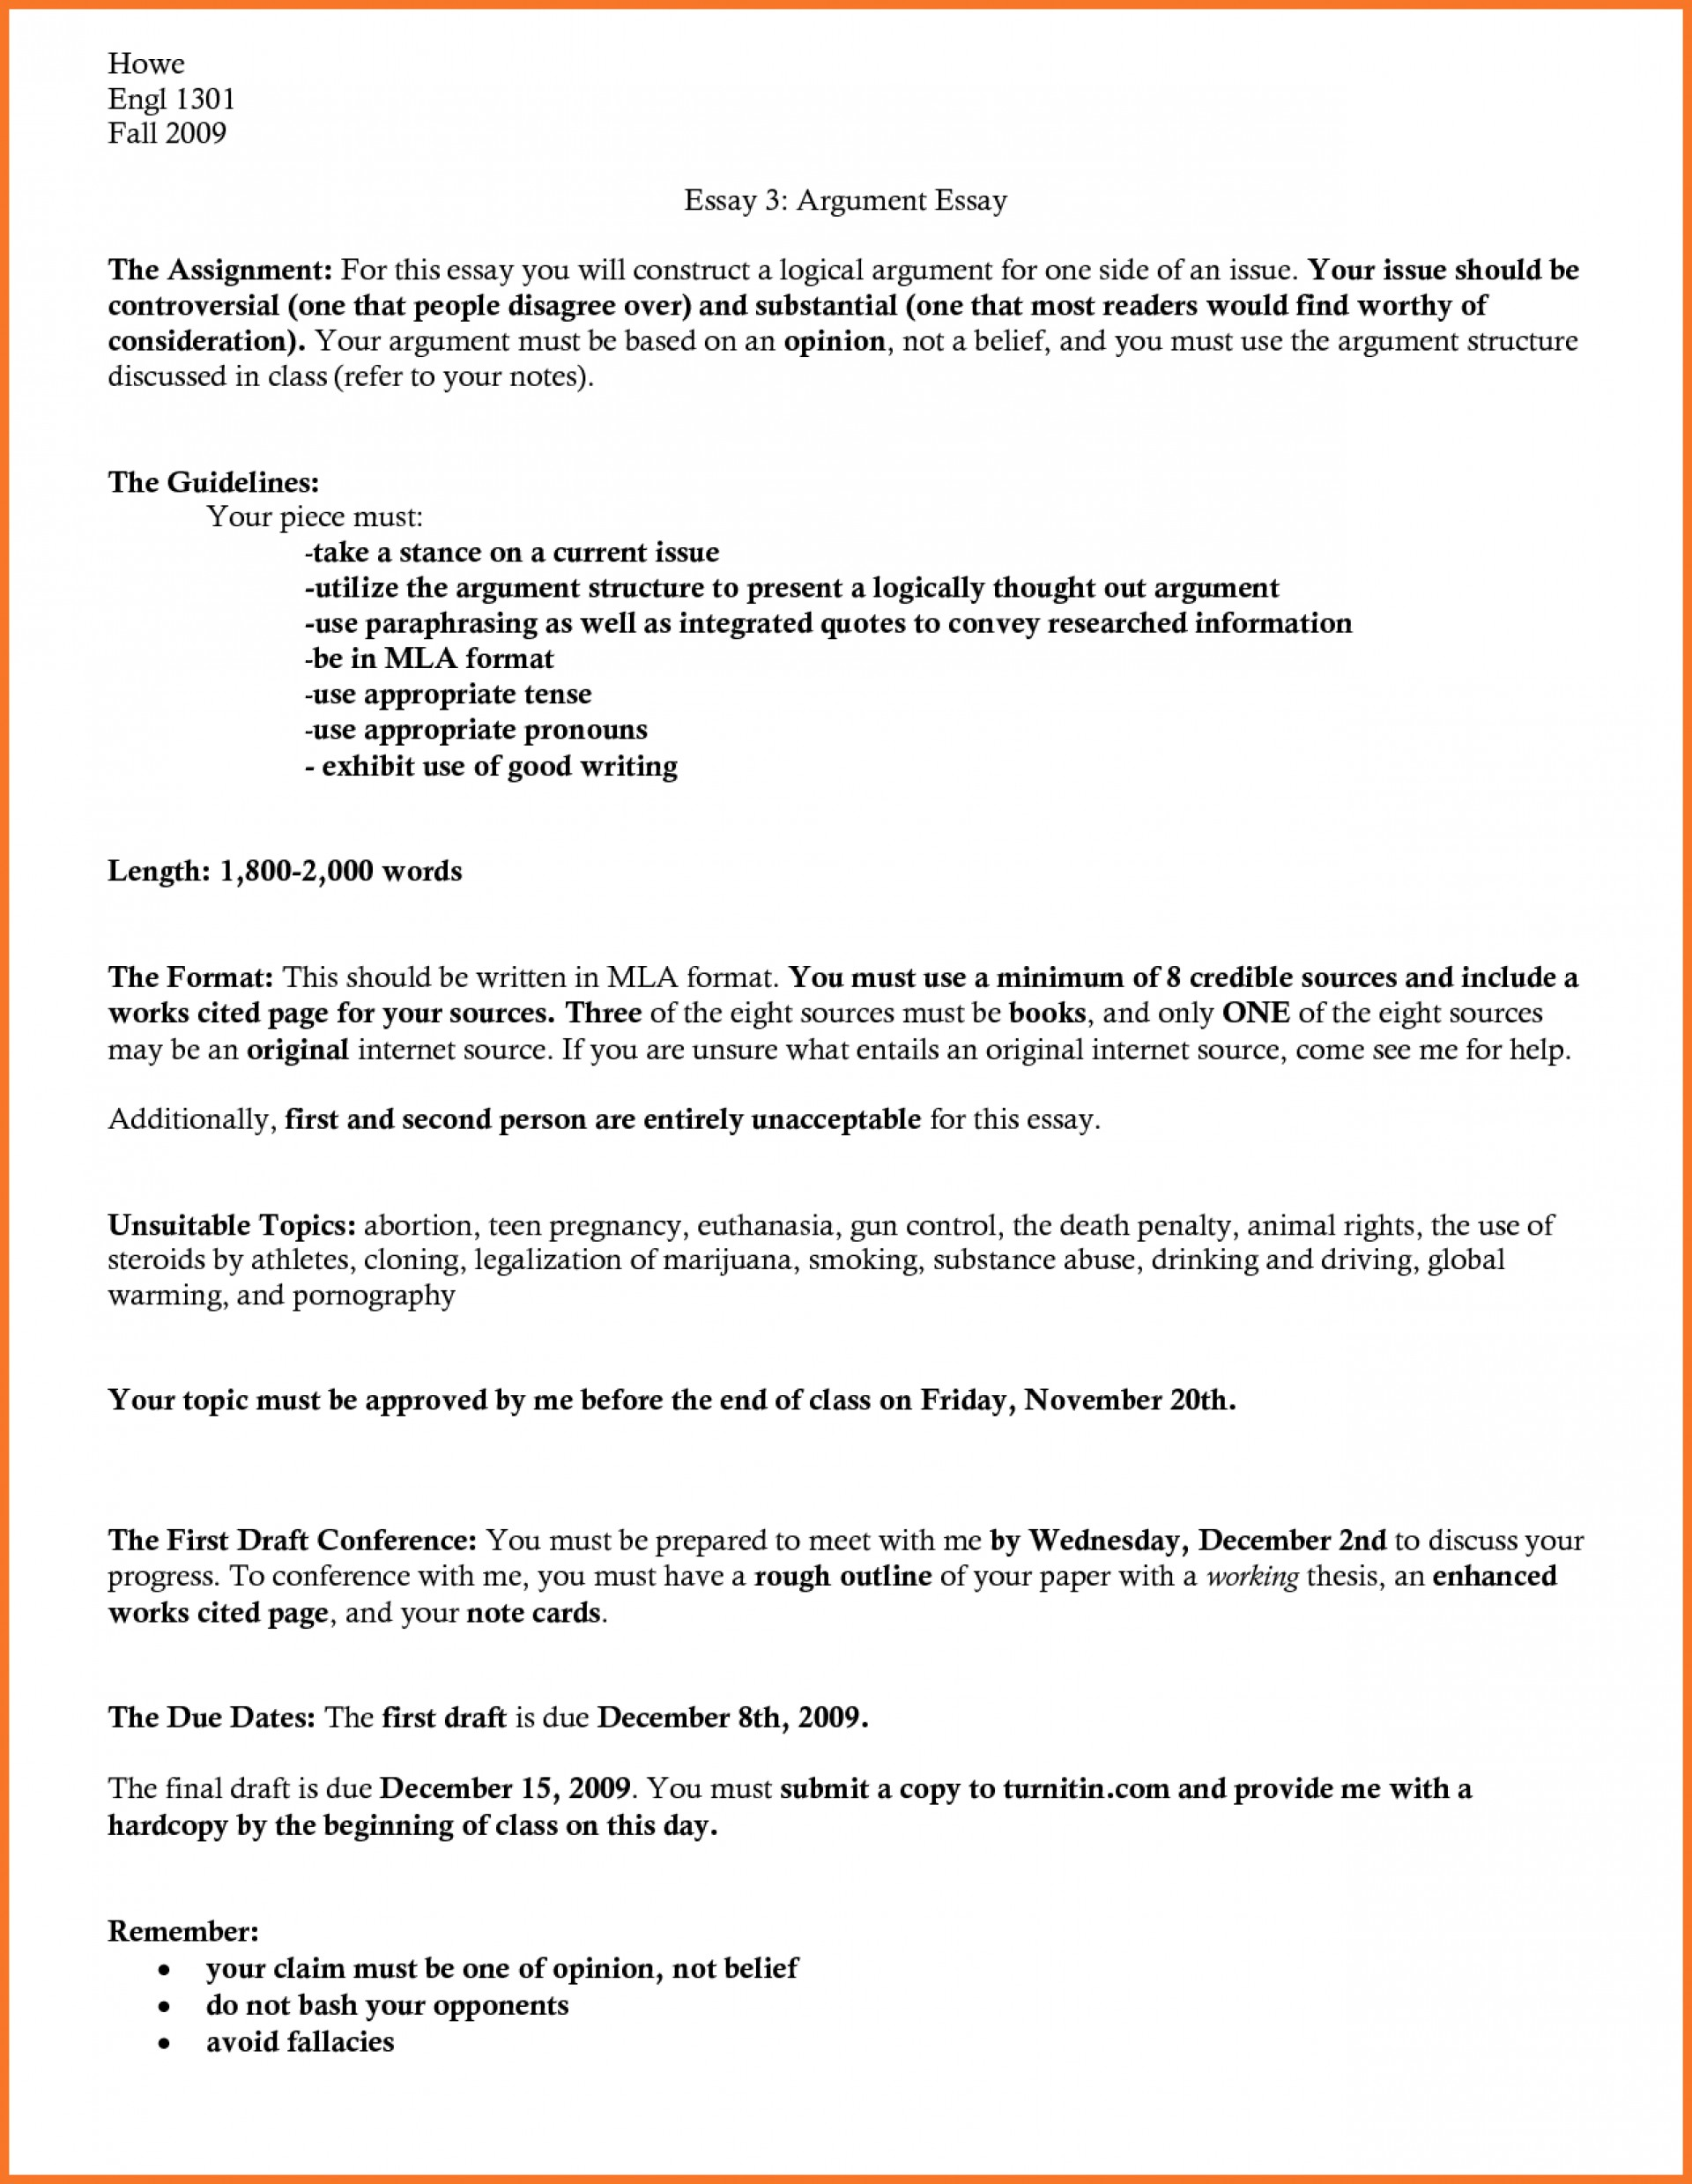 018 Mla Format Research Essay Outline Paper Ideas Of Awesome Template 1920